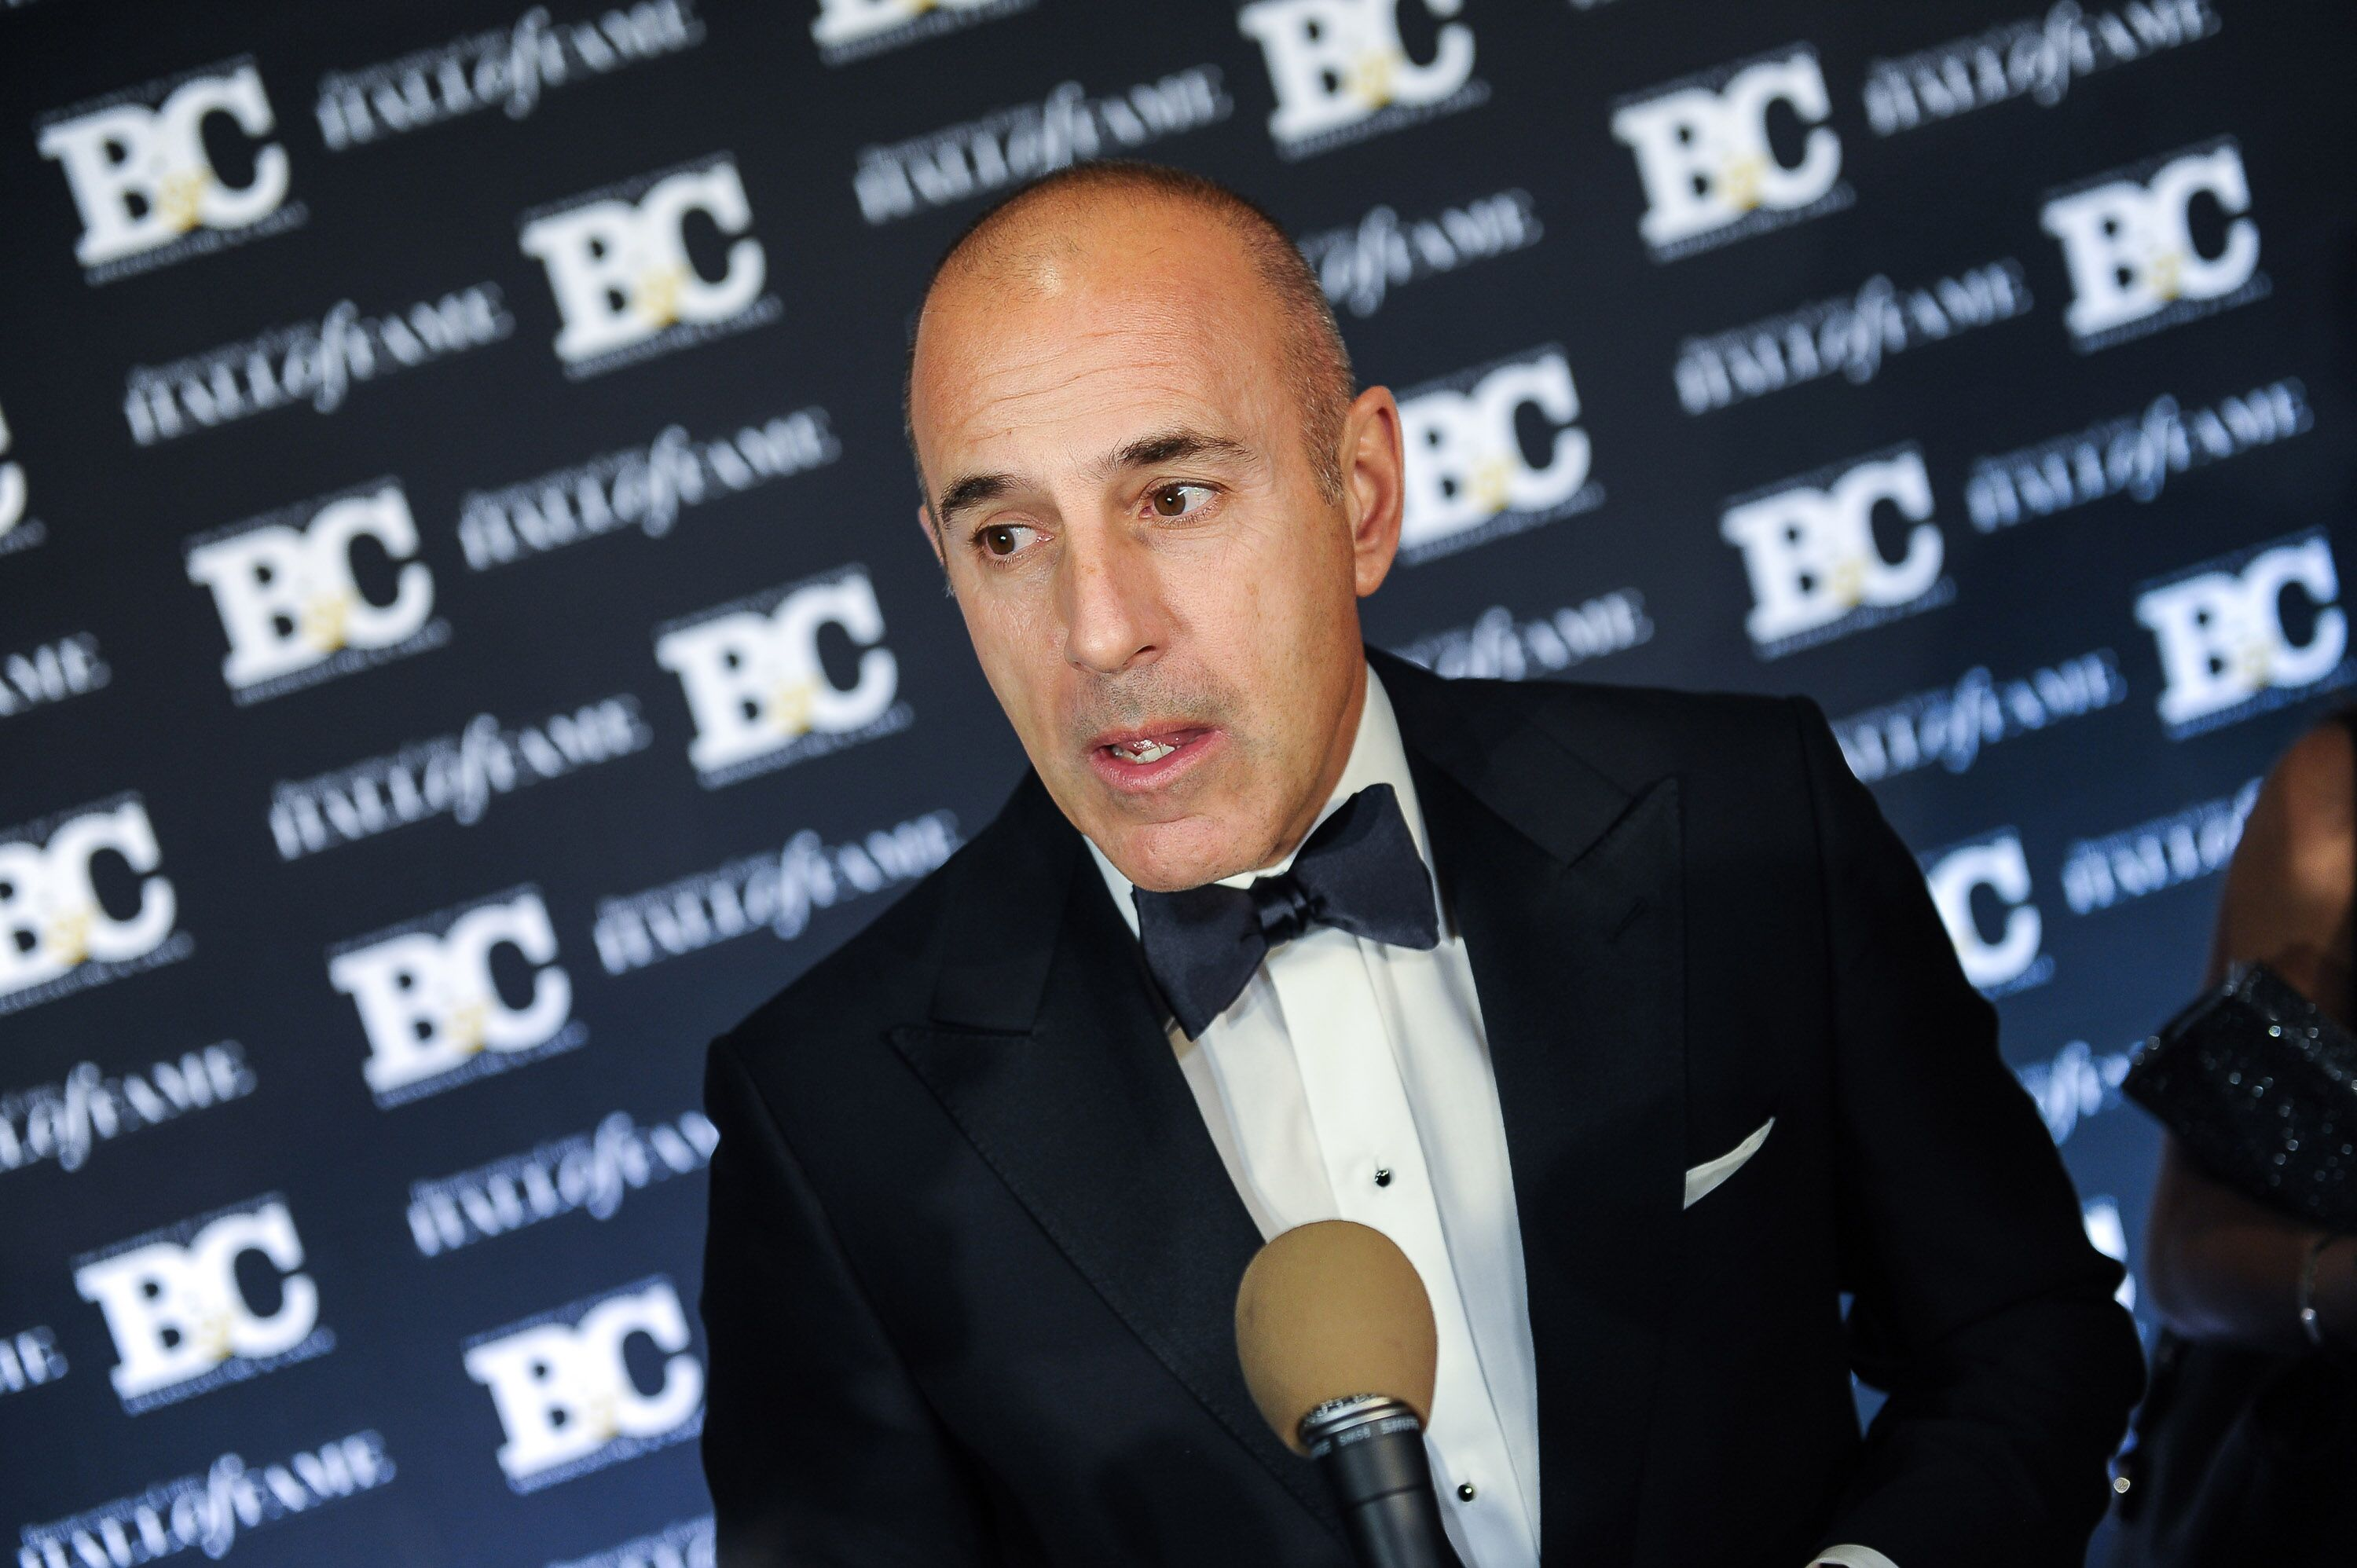 Matt Lauer at Broadcasting and Cable Hall Of Fame Awards 25th Anniversary Gala.   Source: Getty Images